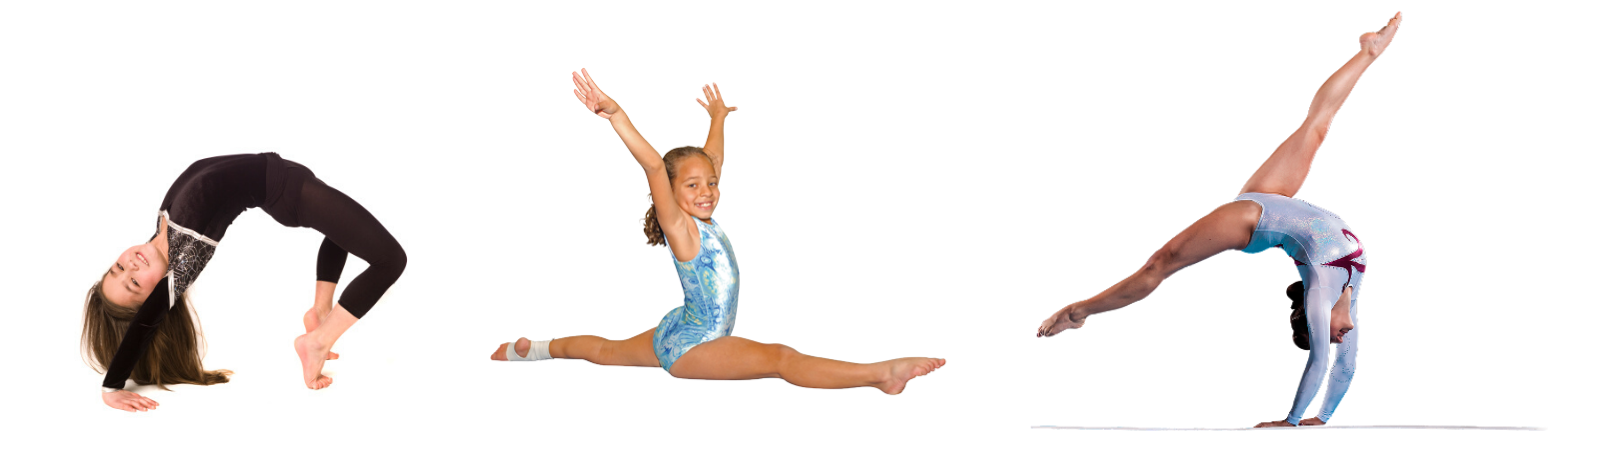 http://mtrymca.org/sites/mtrymca.org/assets/images/programs/Gymnastics2.png